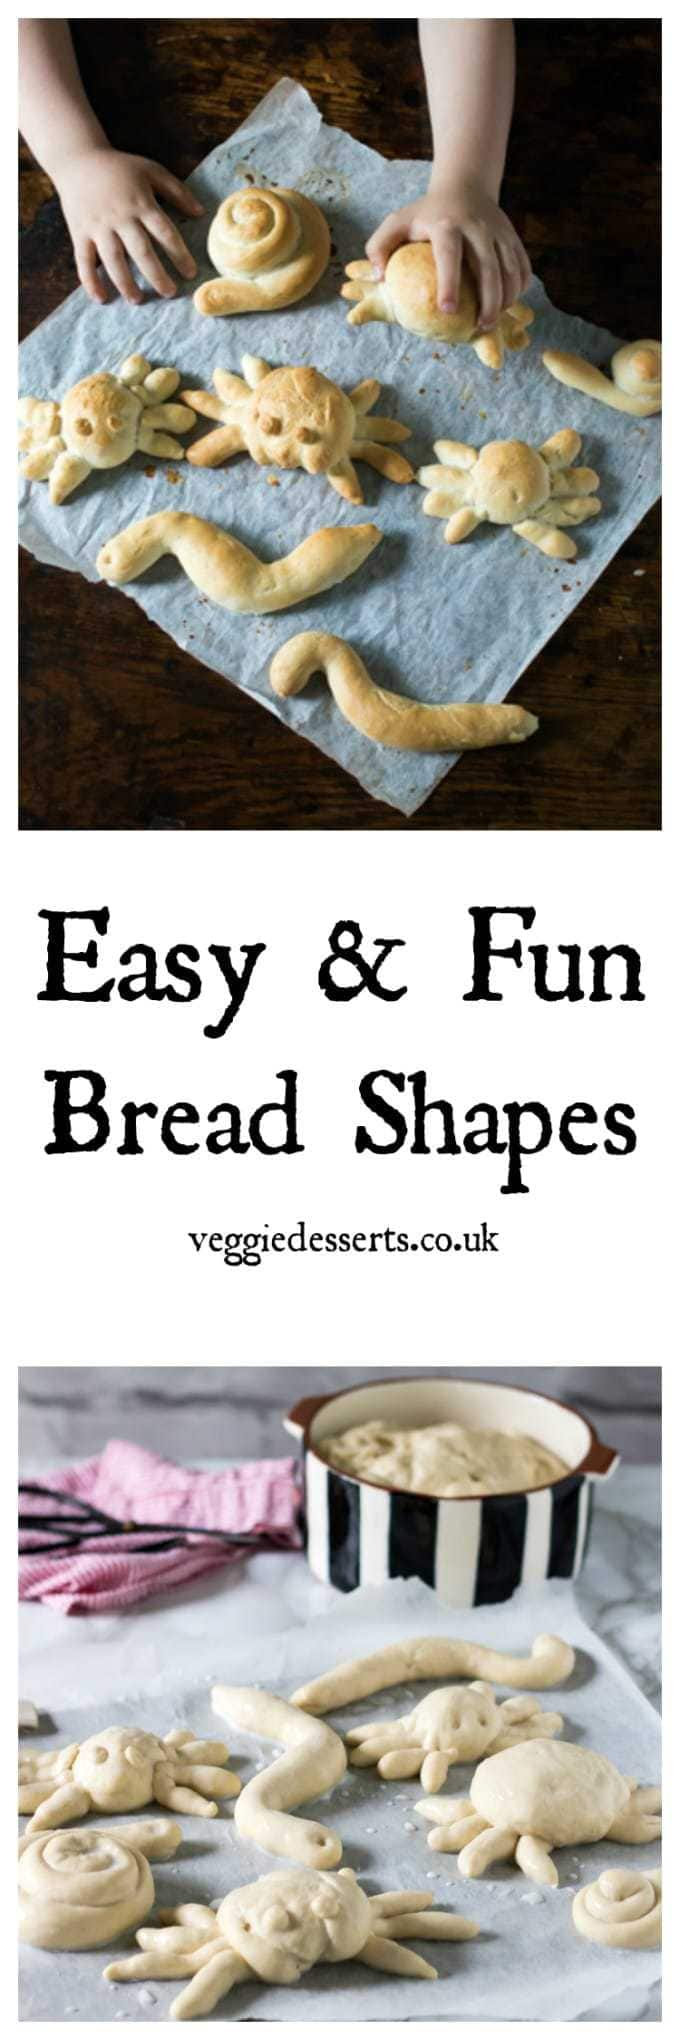 Easy and Fun Bread Shapes - These bloodcurdling bug shapes are perfect for halloween! Easy enough for kids to make. #halloween #cookingwithkids #healthykids #bread #breadshapes #rolls